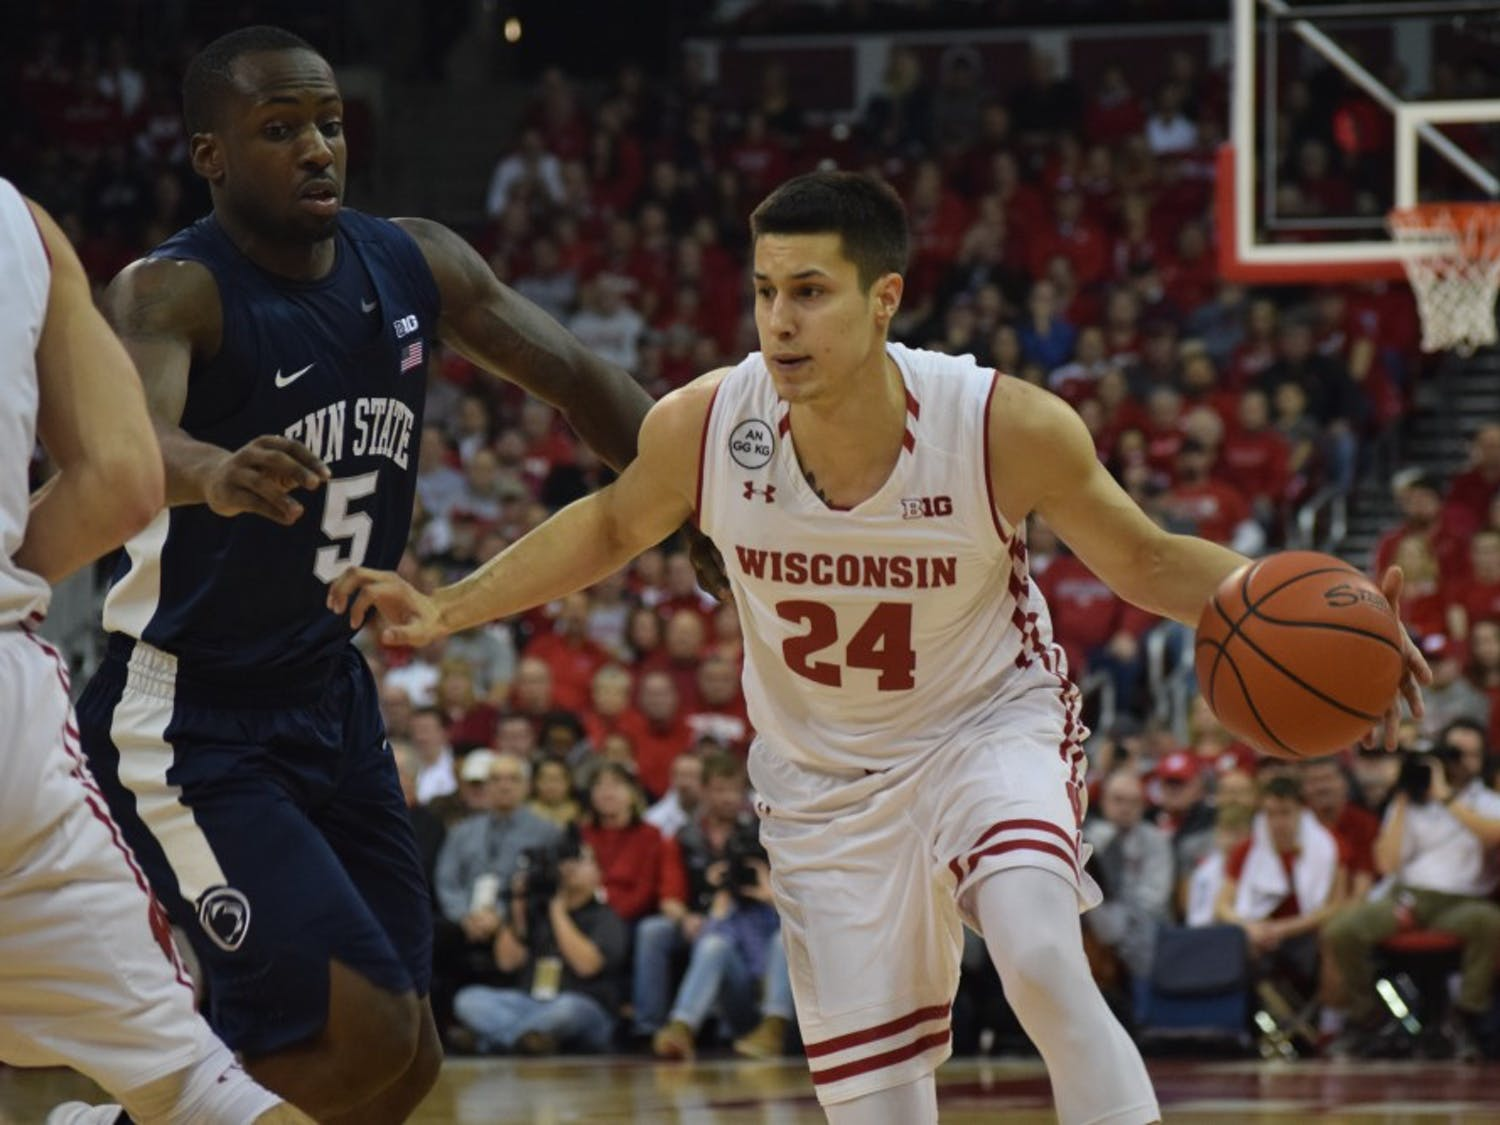 Koenig was sidelined with an injury and the Badgers couldn't get a win in his absence.